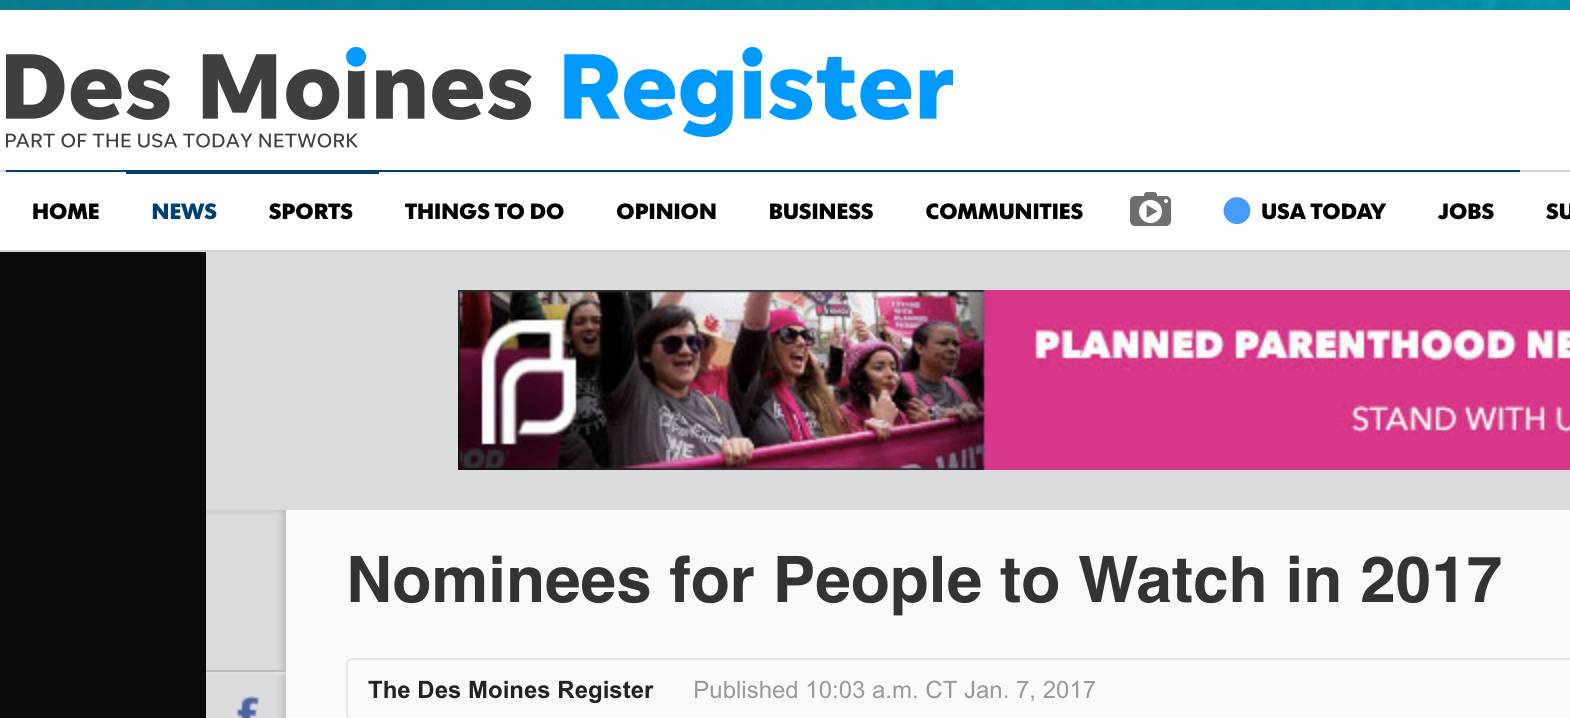 Des Moines Register's Nominees for People to Watch in 2017